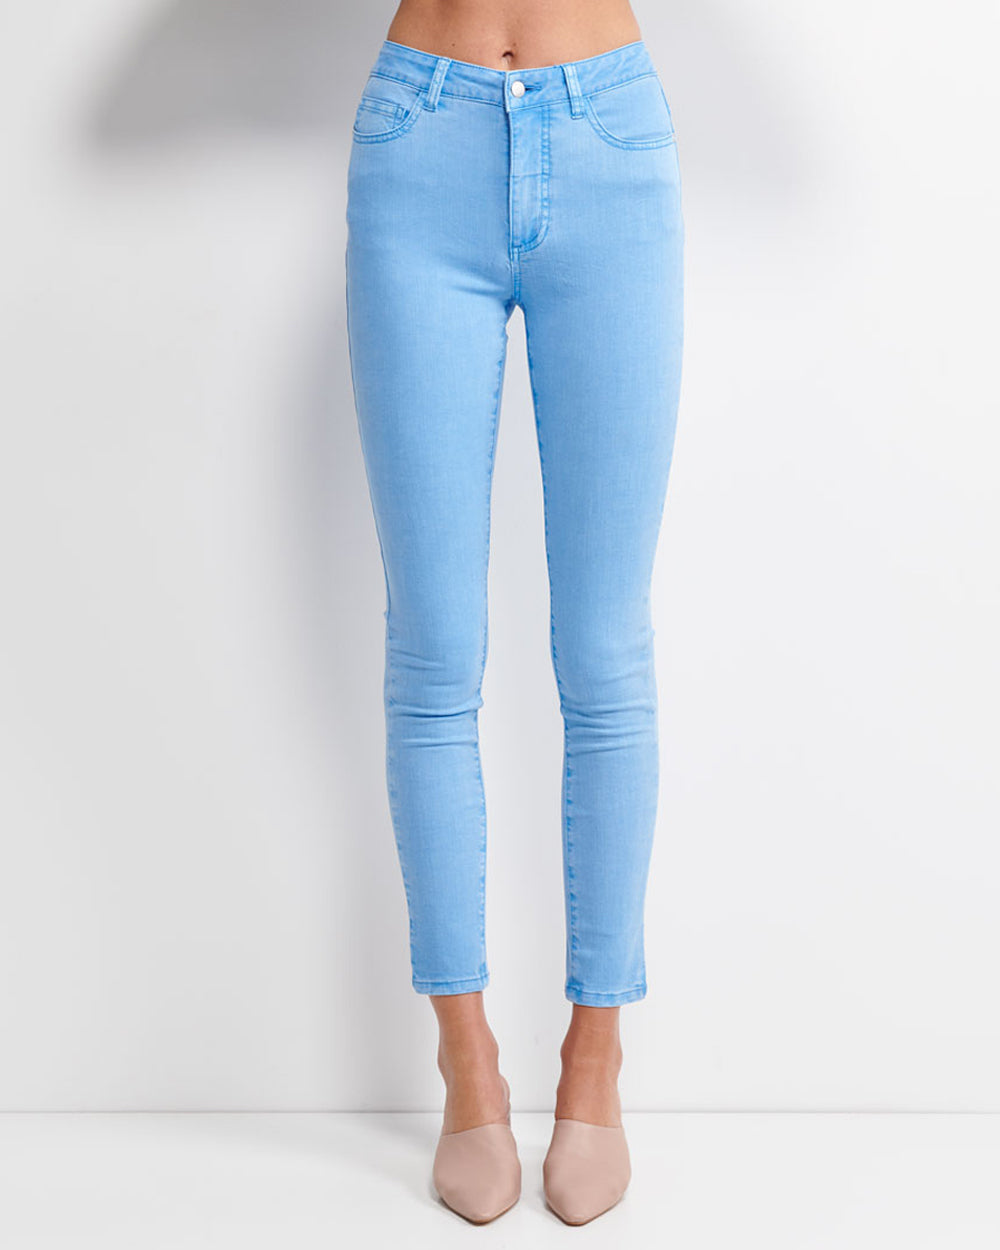 Audrey High Rise Jeans - Parison Blue